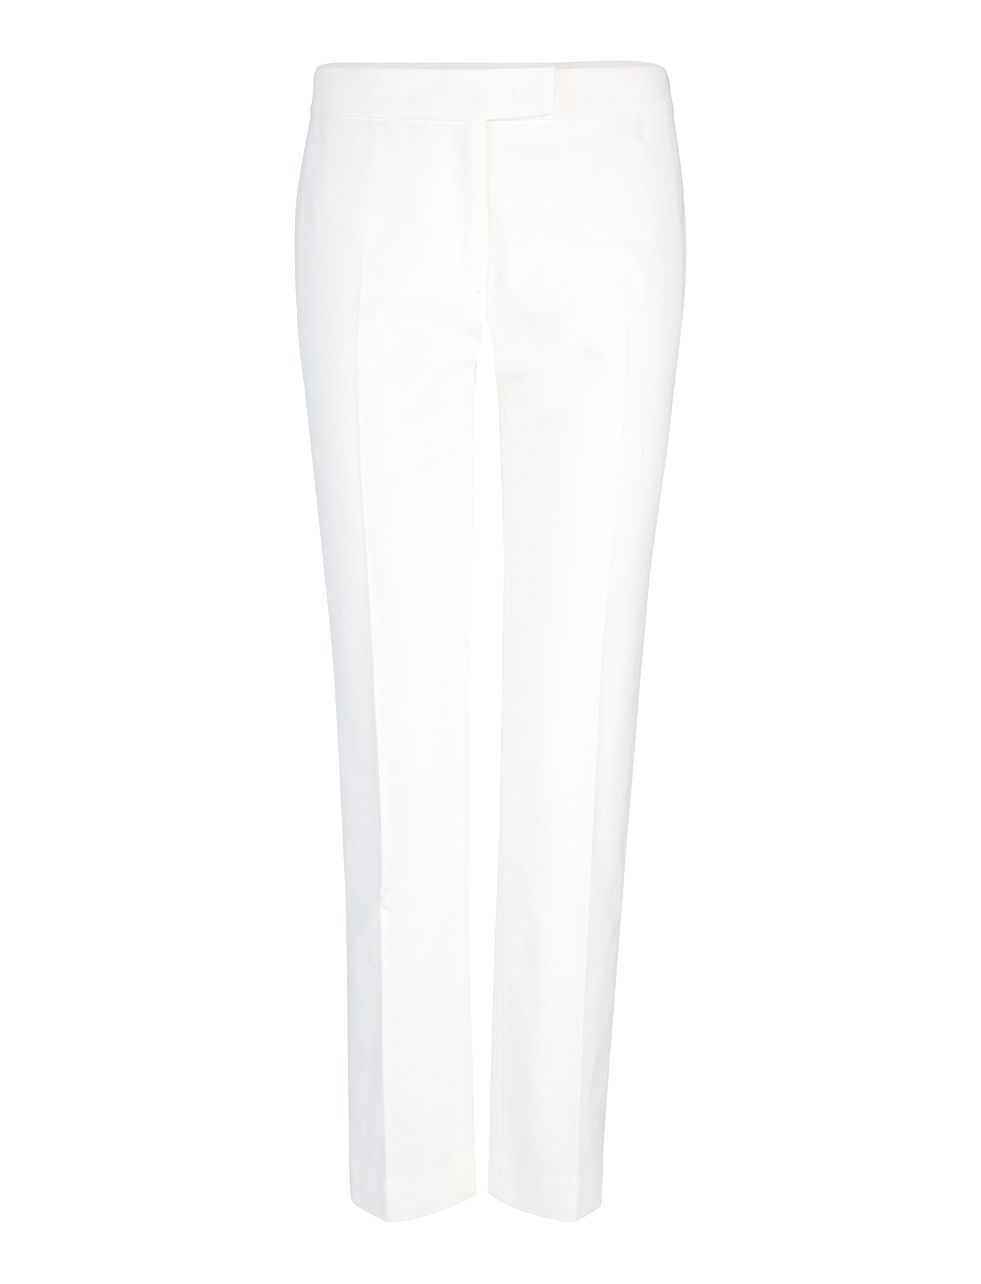 Gabardine Stretch Finley Trouser In Off White - length: standard; pattern: plain; waist: mid/regular rise; predominant colour: white; occasions: evening, creative work; fibres: cotton - mix; texture group: cotton feel fabrics; fit: straight leg; pattern type: fabric; style: standard; season: a/w 2015; wardrobe: basic